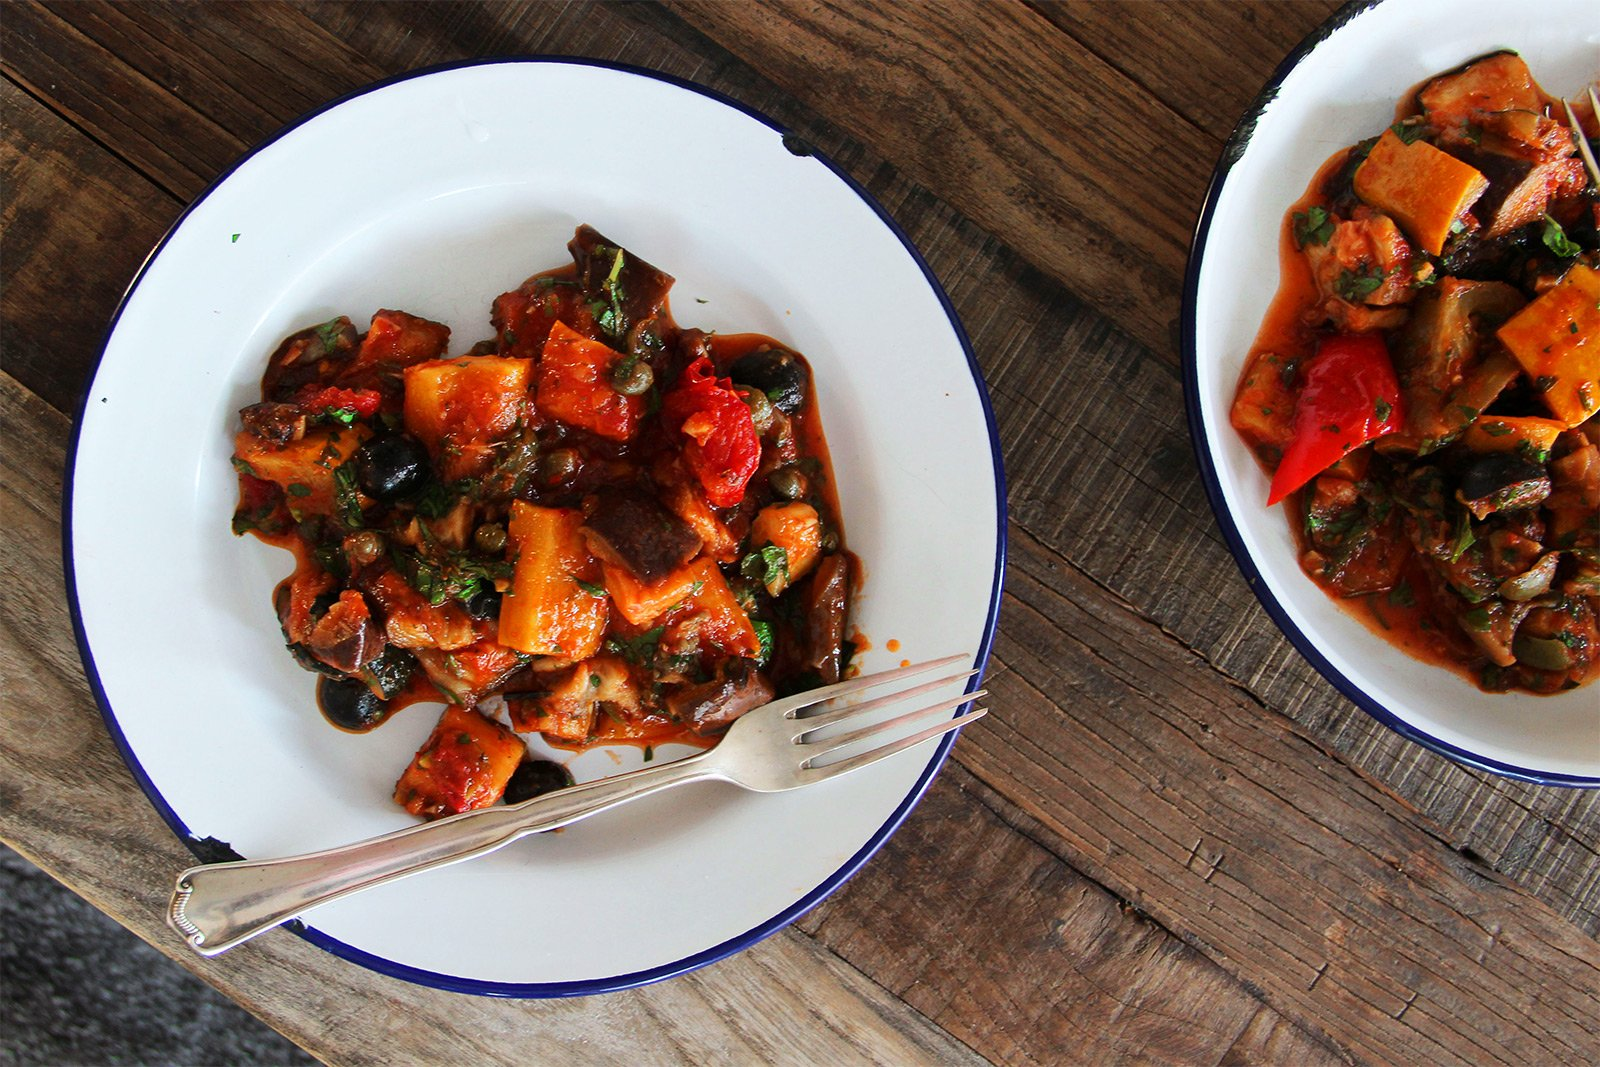 How to try caponata in Sicily